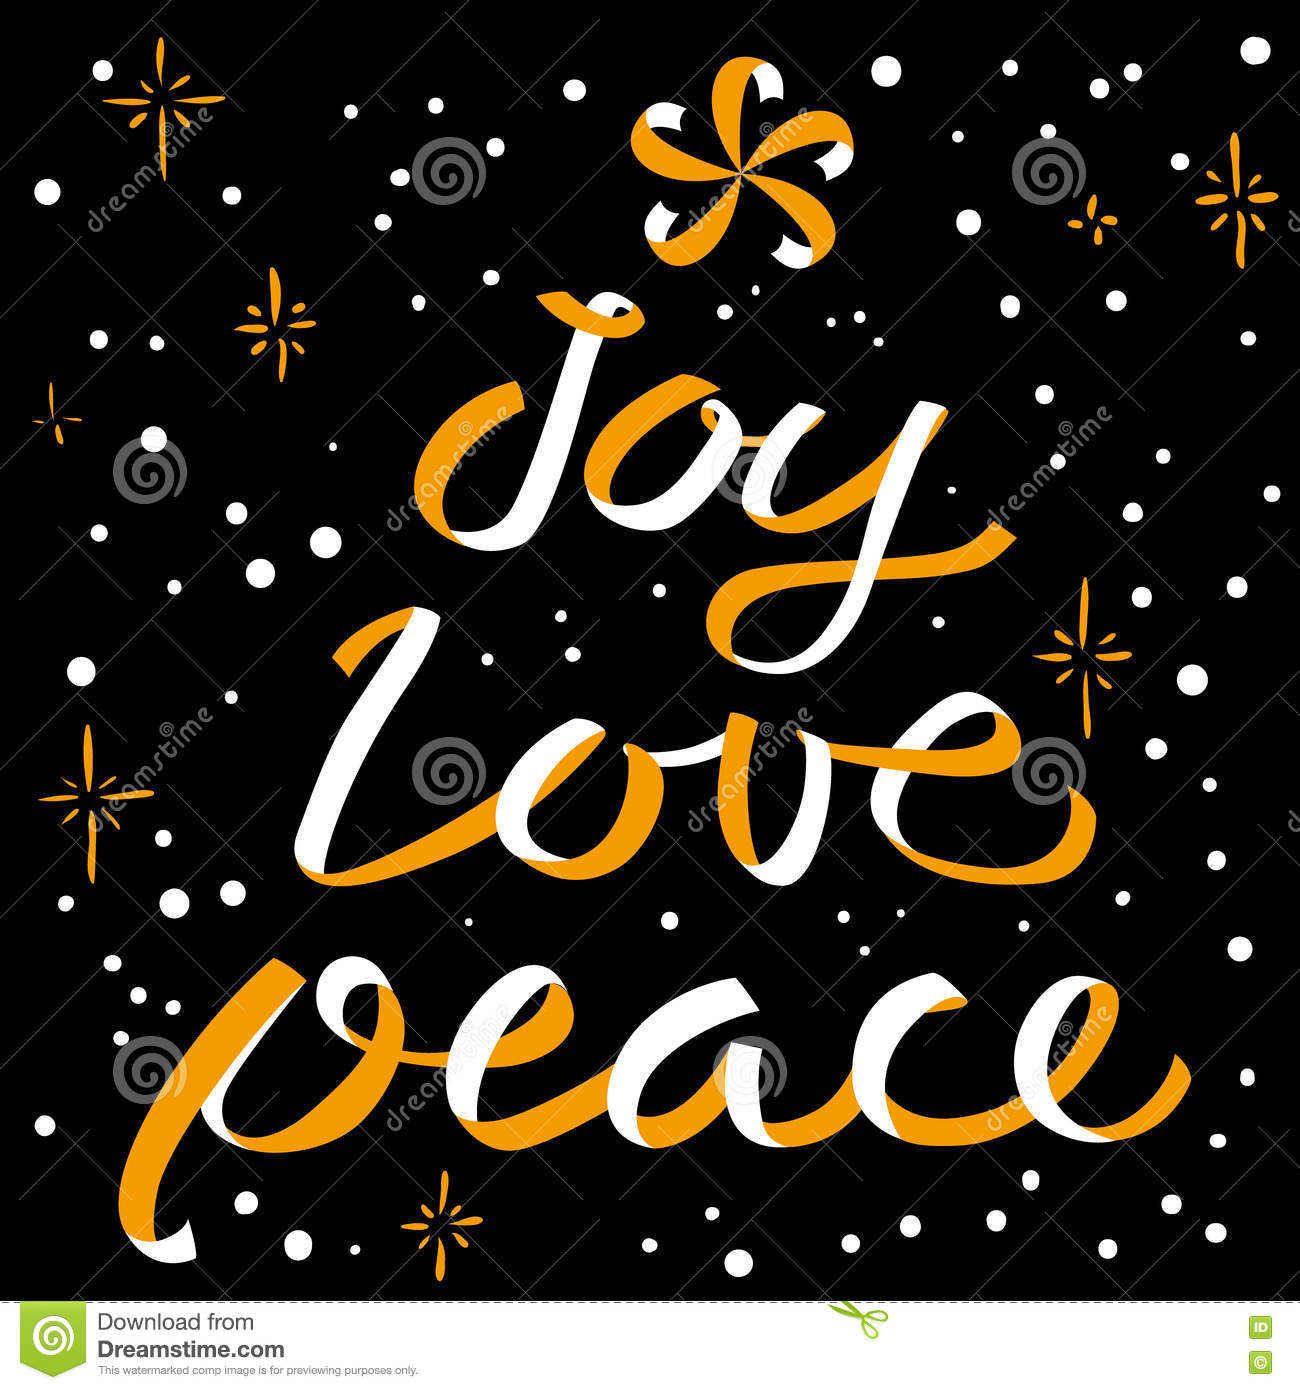 joy love peace christmas calligraphic lettering new year backgr